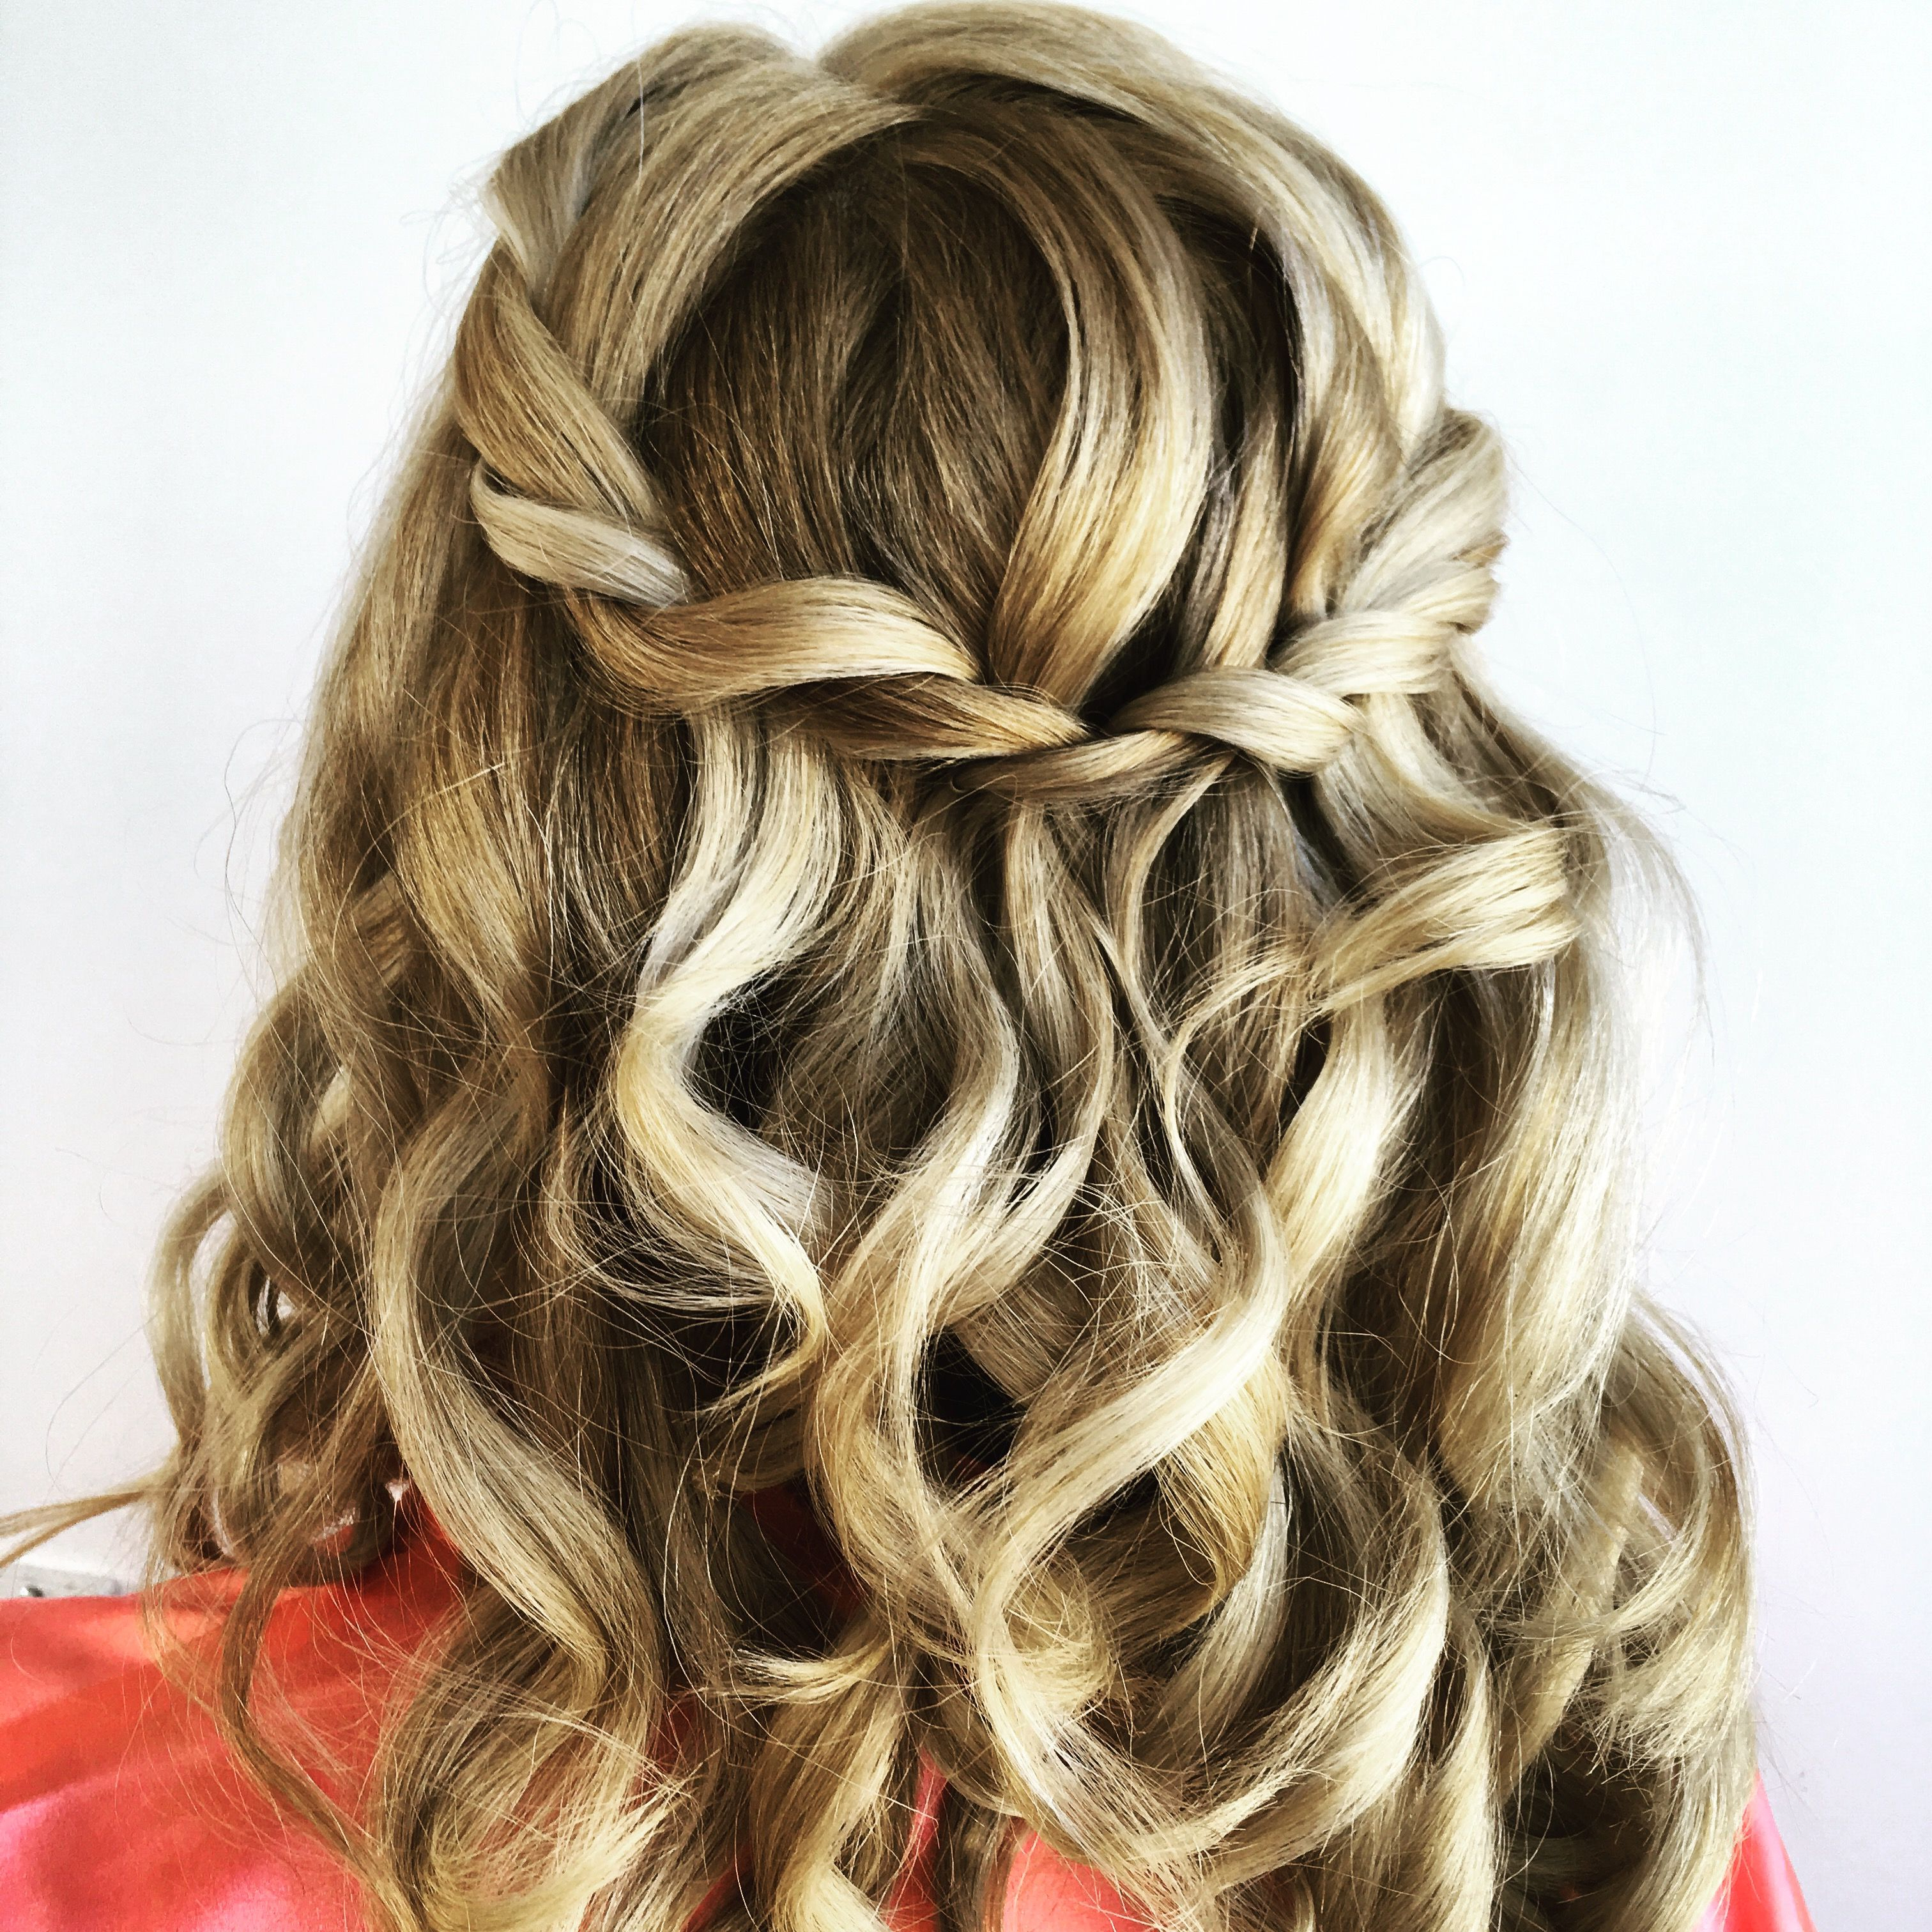 2017 Twists And Curls In Bridal Half Up Bridal Hairstyles Intended For Half Up Twist Curls Updo Bride Bridesmaid Hair Hairstyle Wedding (View 5 of 20)